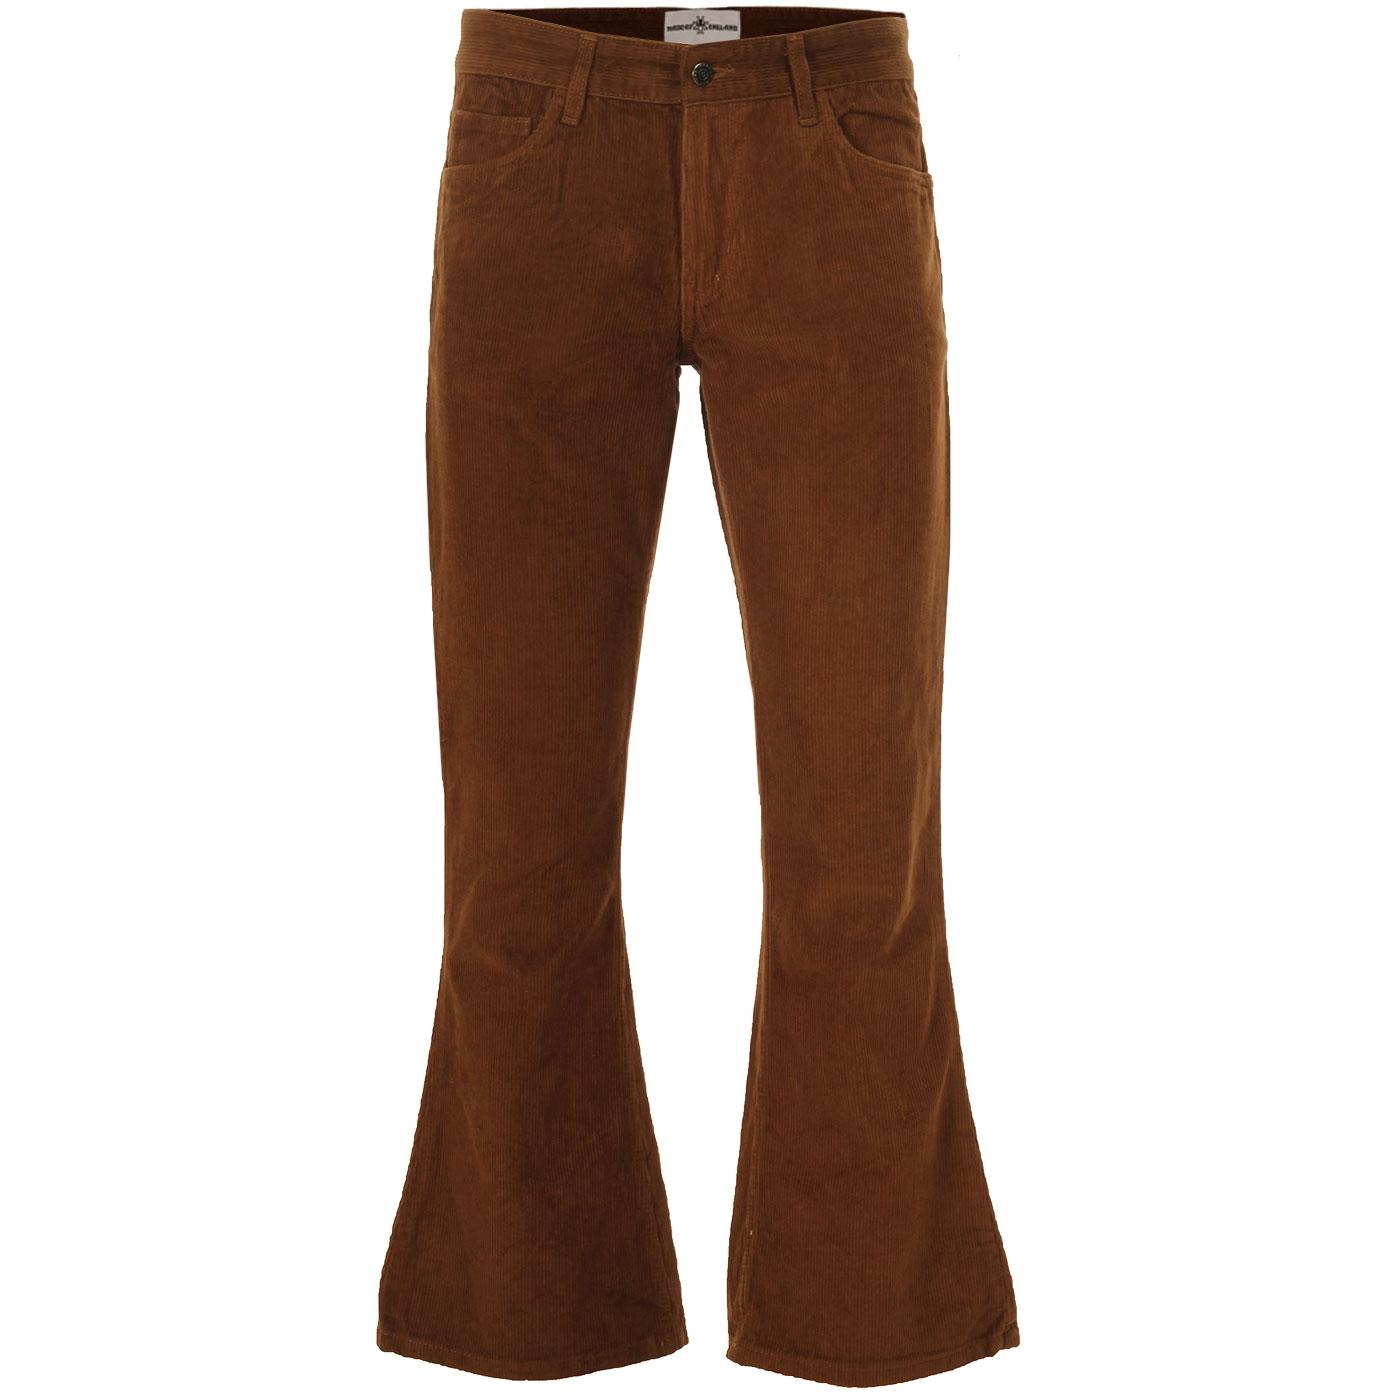 Madcap England Killer Retro 1970s Cord Flares in Dark Tan